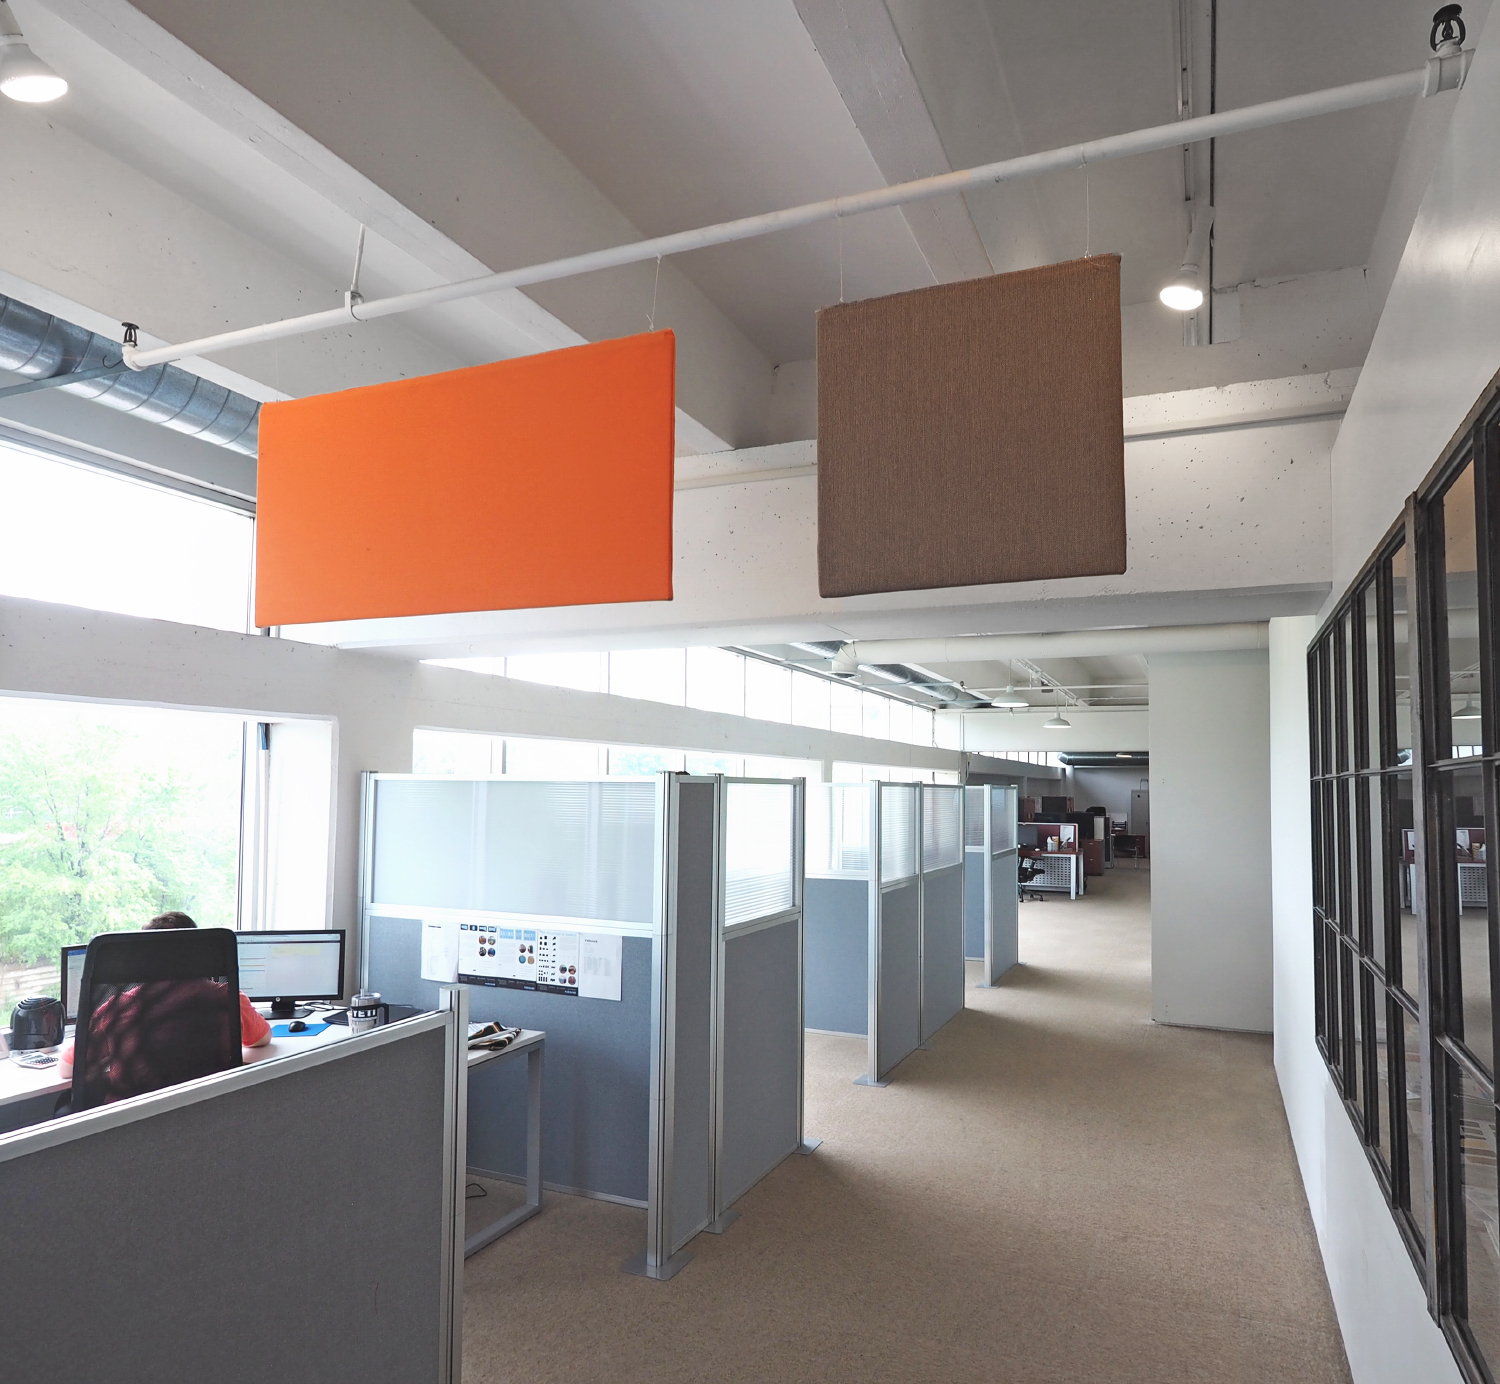 versare updates and enhances ceiling-mounted sound panels